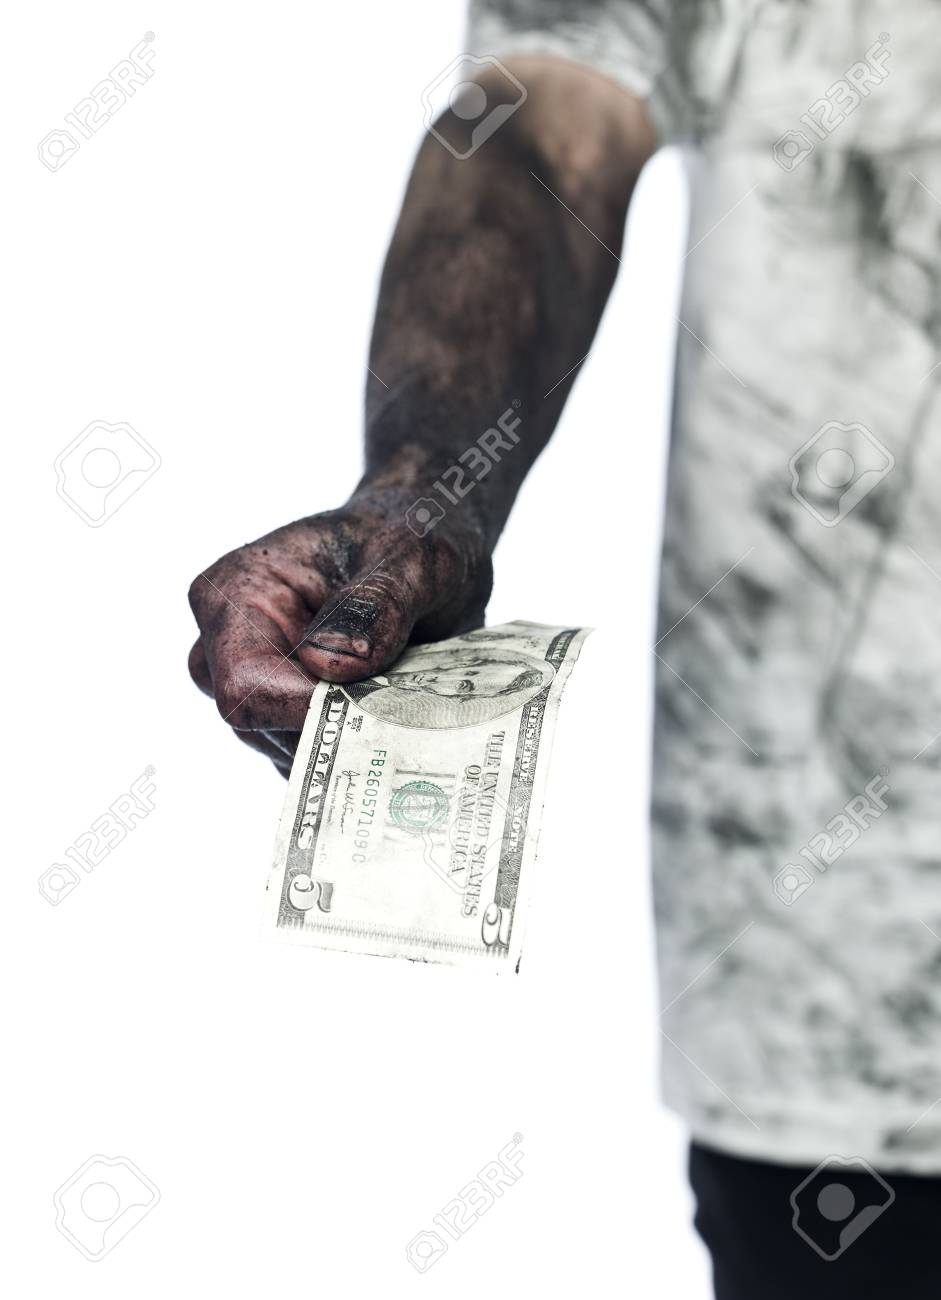 Dirty hand holding a five dollar bank note Stock Photo - 4852593